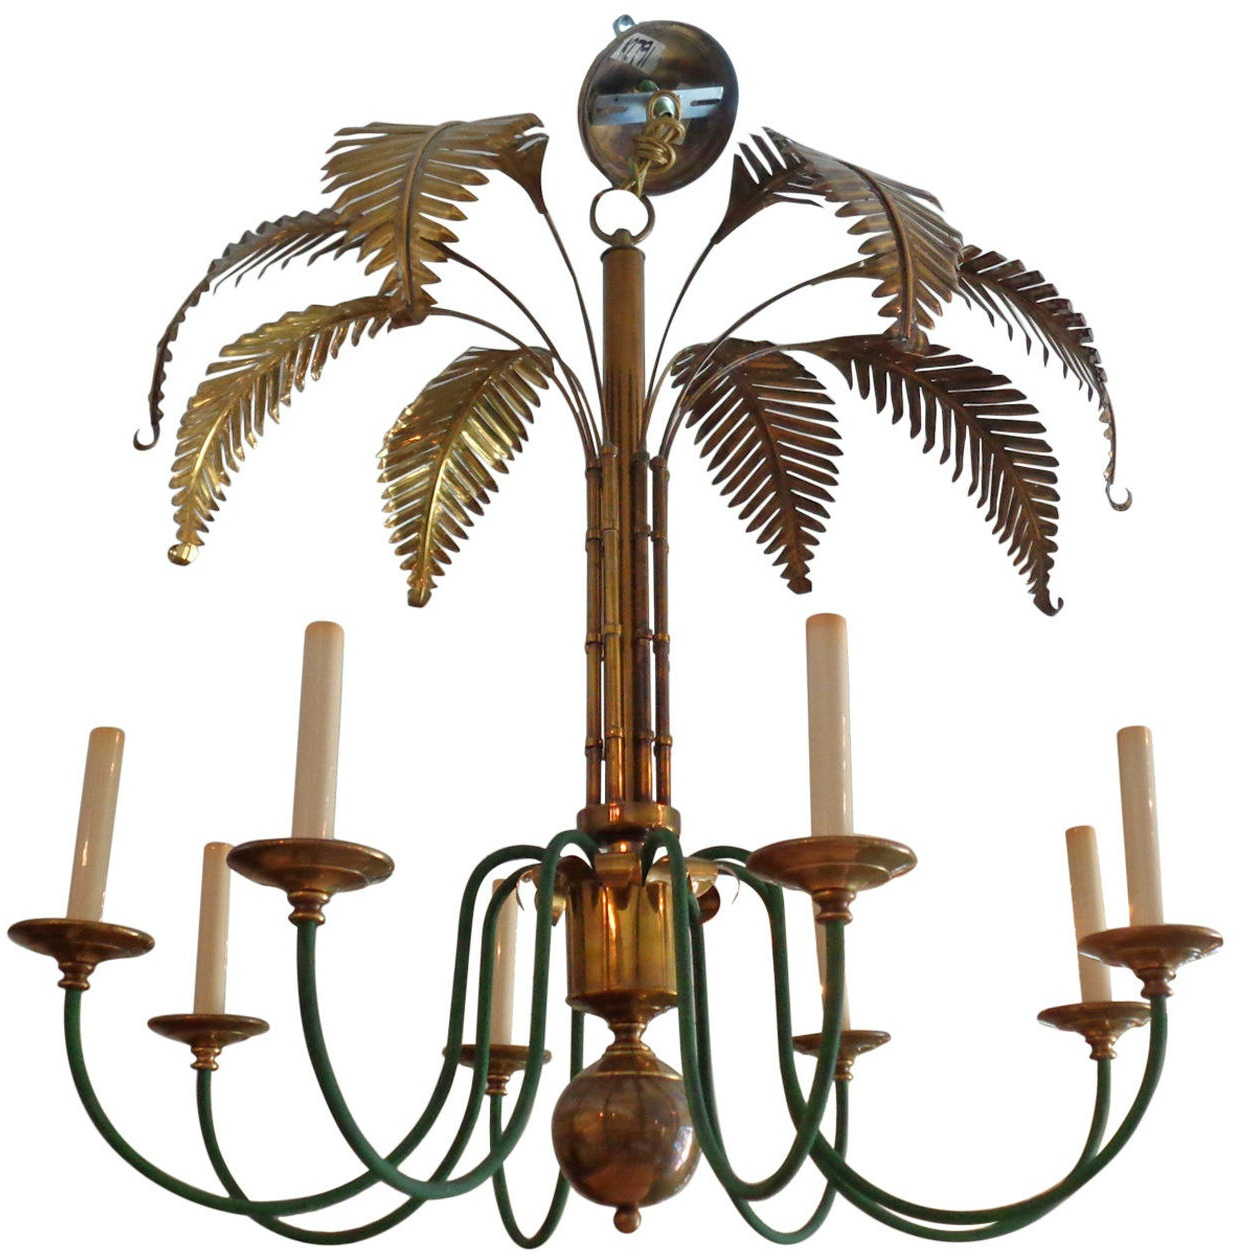 Thrift fabulous thrift fabulous find palm frond chandelier heres a great chandelier we found on one of our scouting trips below are ideas of how to style your own home with a decorative palm chandelier aloadofball Images